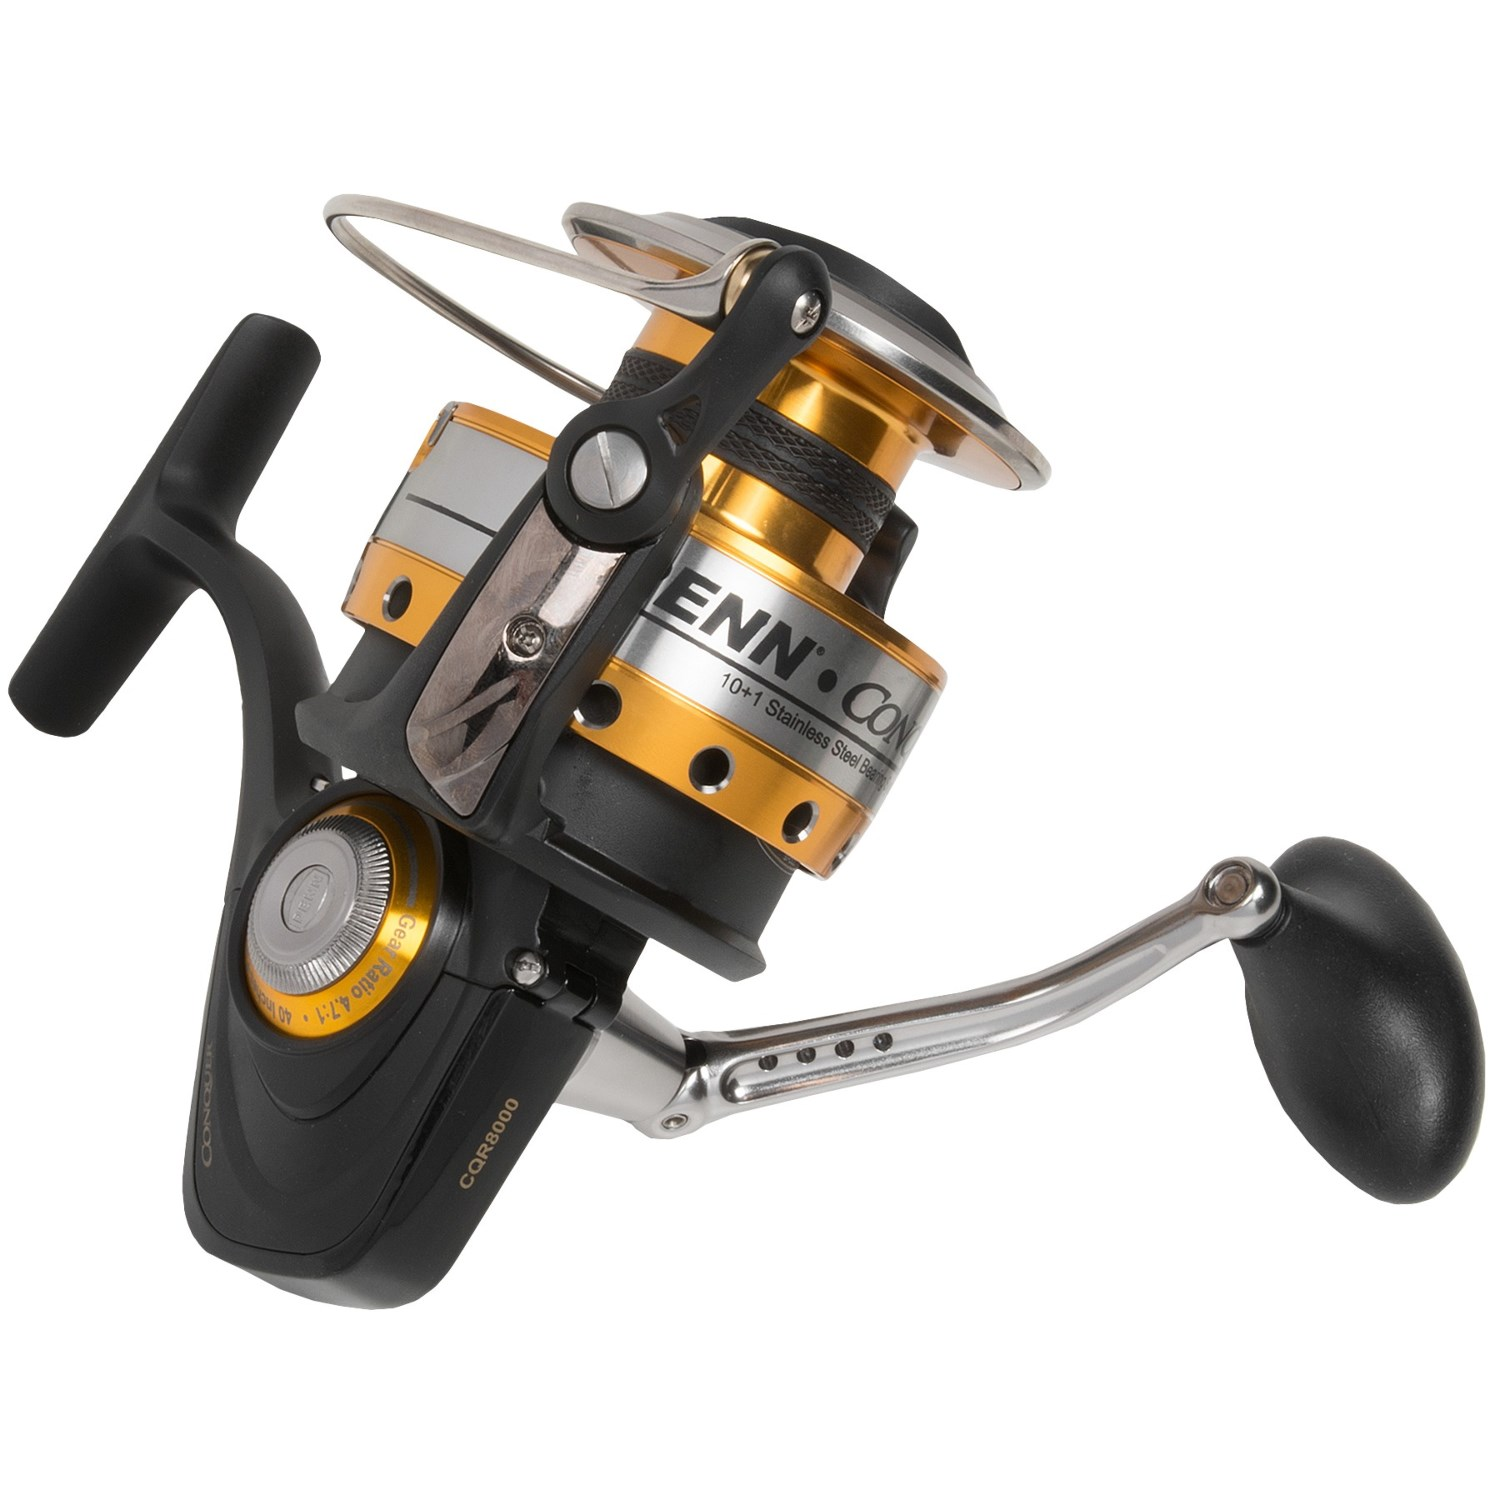 Penn conquer 8000 spinning reel 7808k save 25 for Penn fishing reel